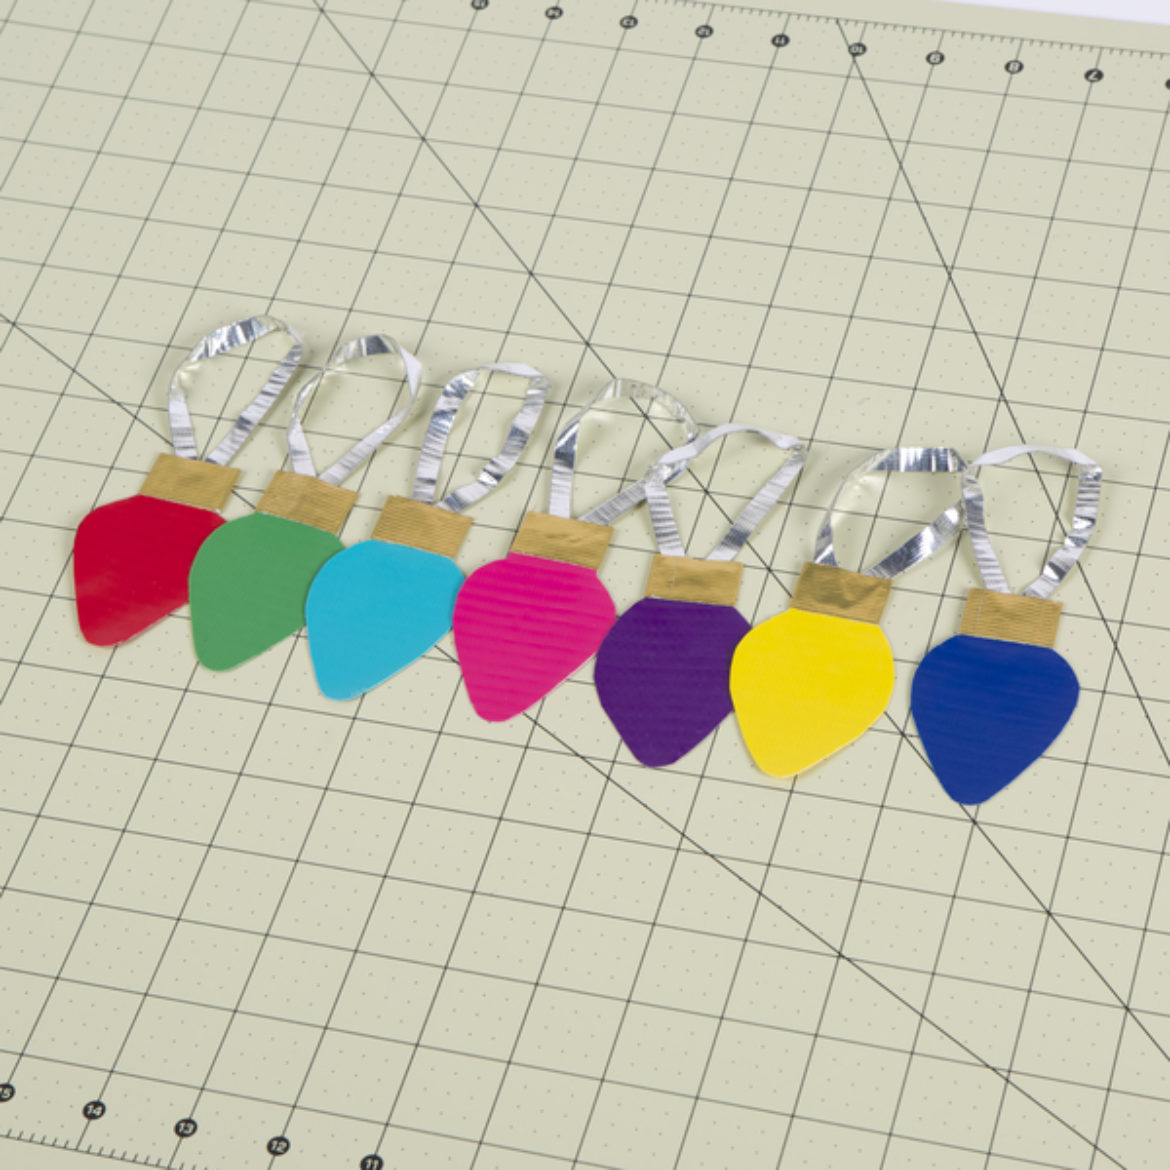 Steps 1-5 repeated to created with various colors to create a colorful array